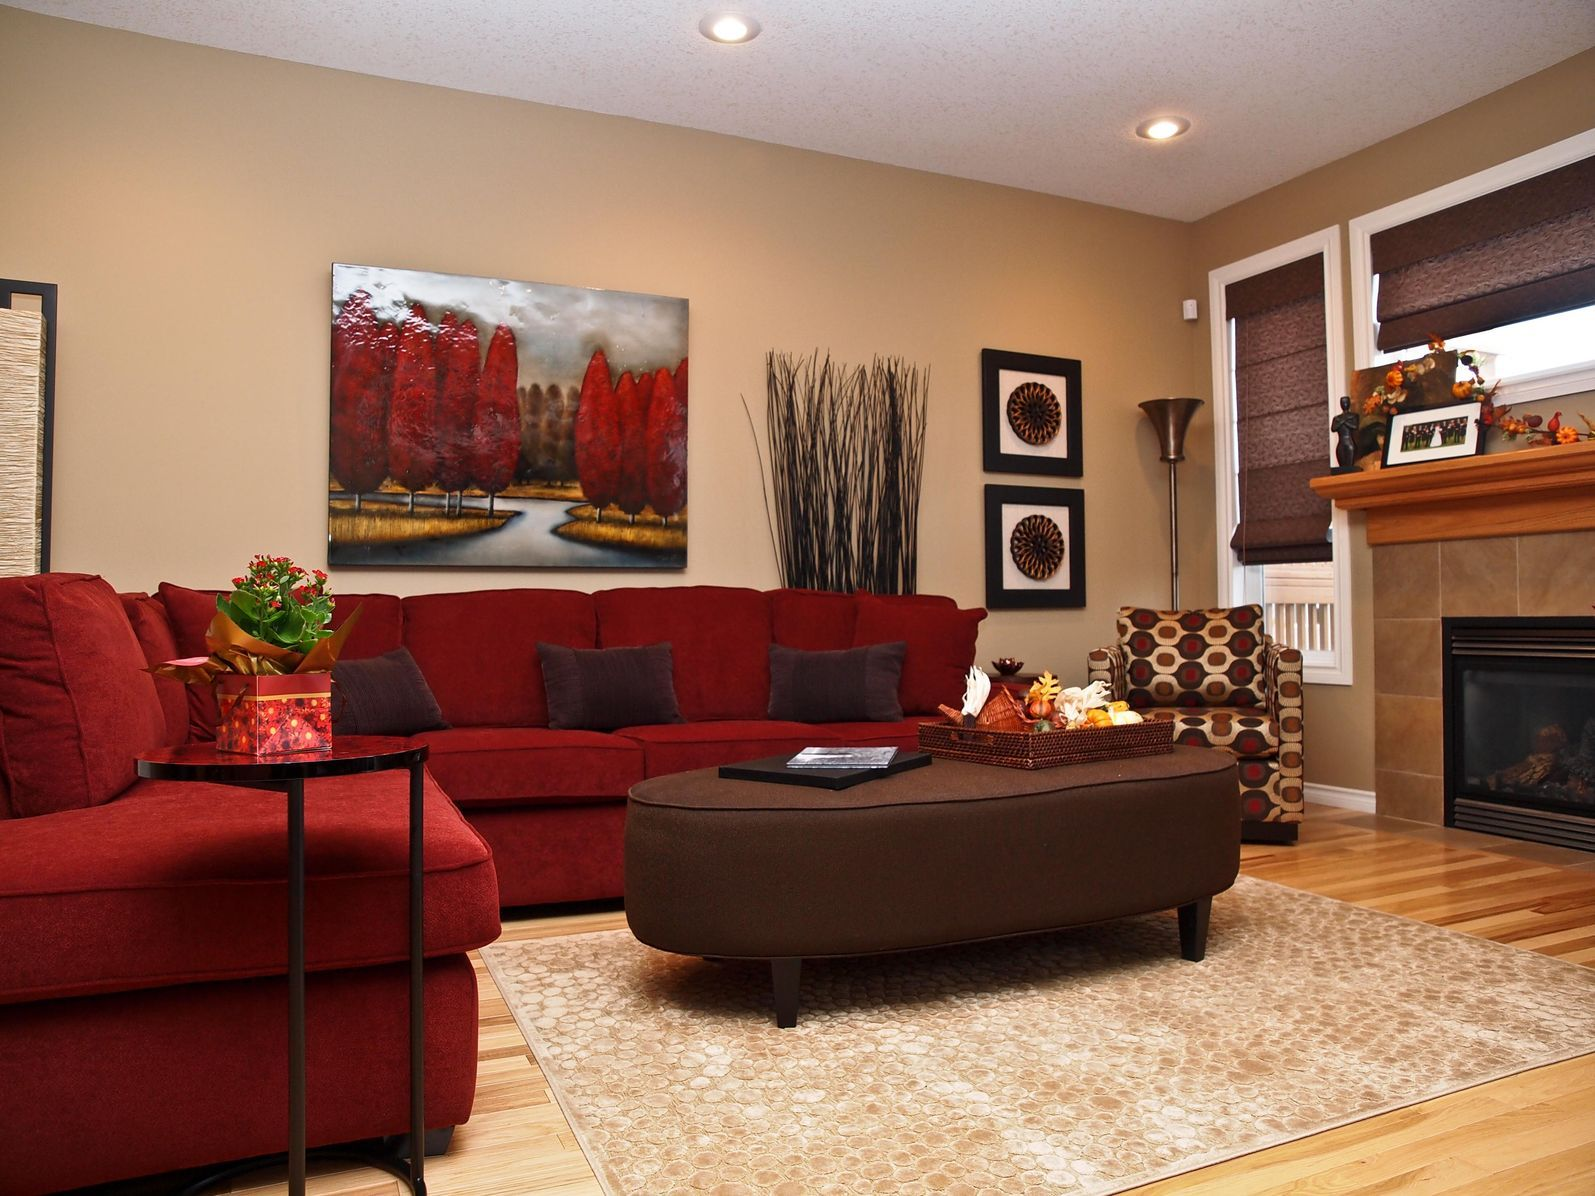 Red Wall Living Room Decorating 236 Best Images About Red And Brown Living Room On Pinterest